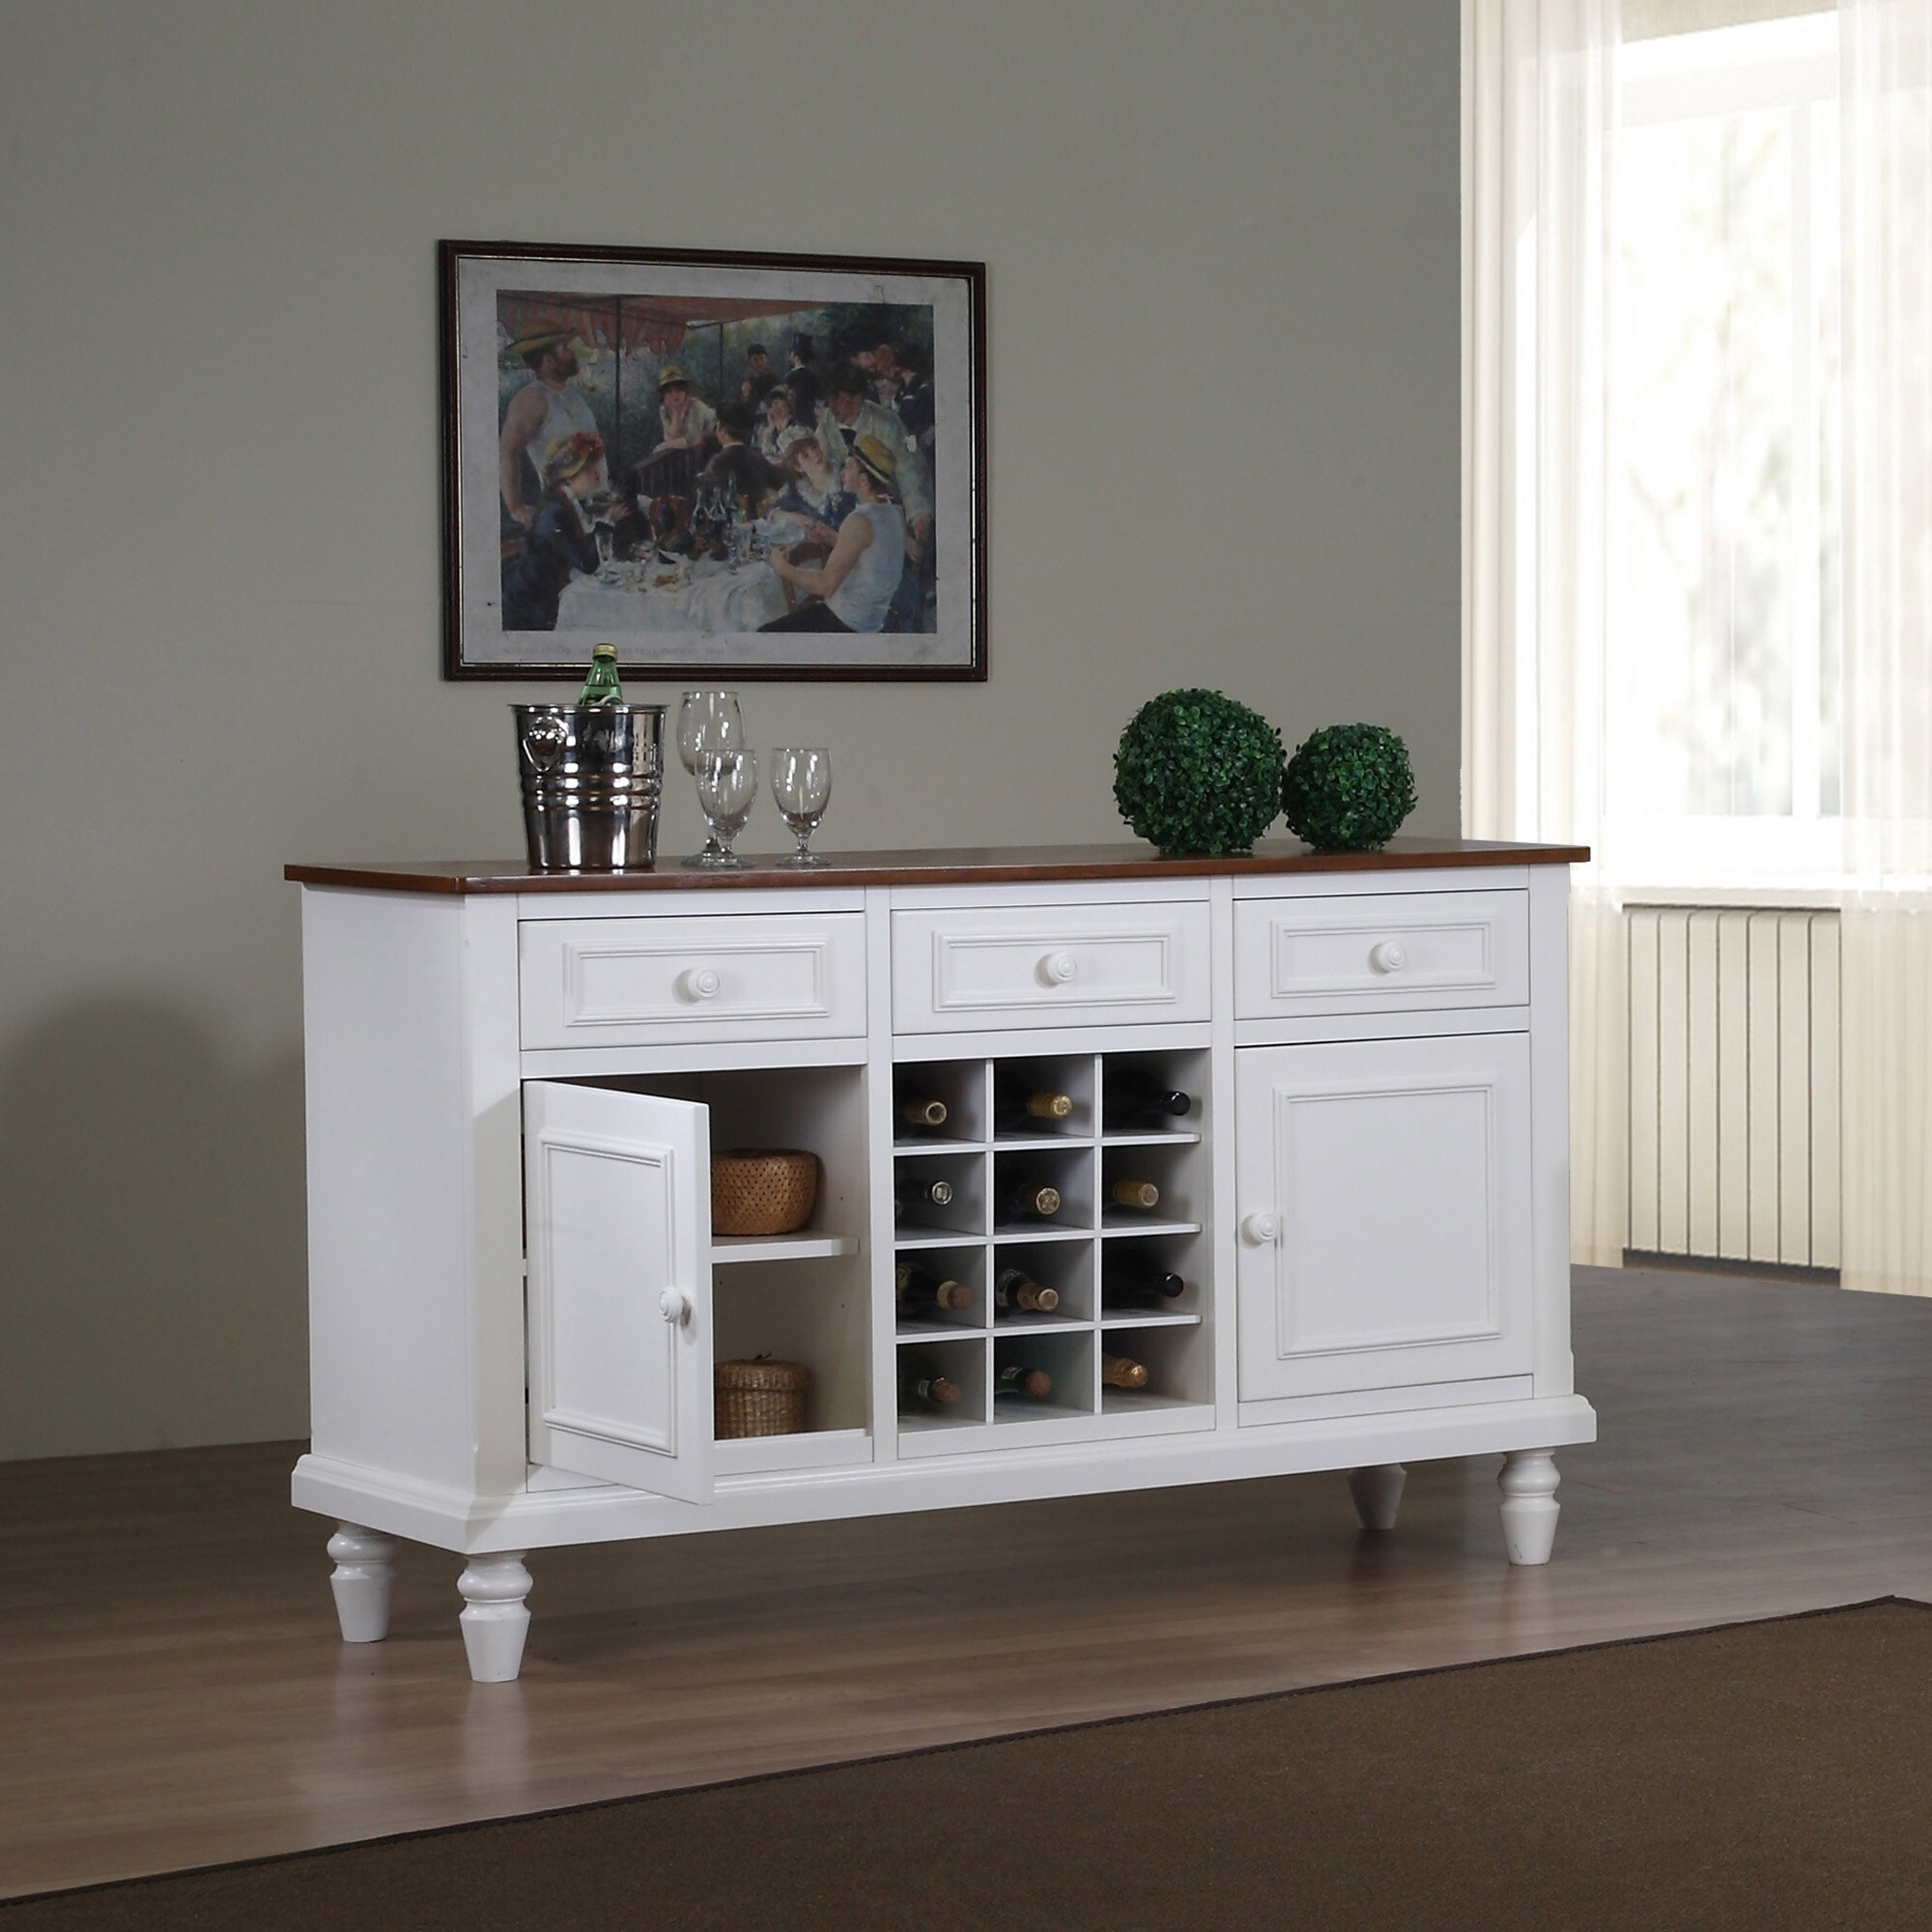 Picture of: Sideboard Buffet With Wine Rack Ideas On Foter